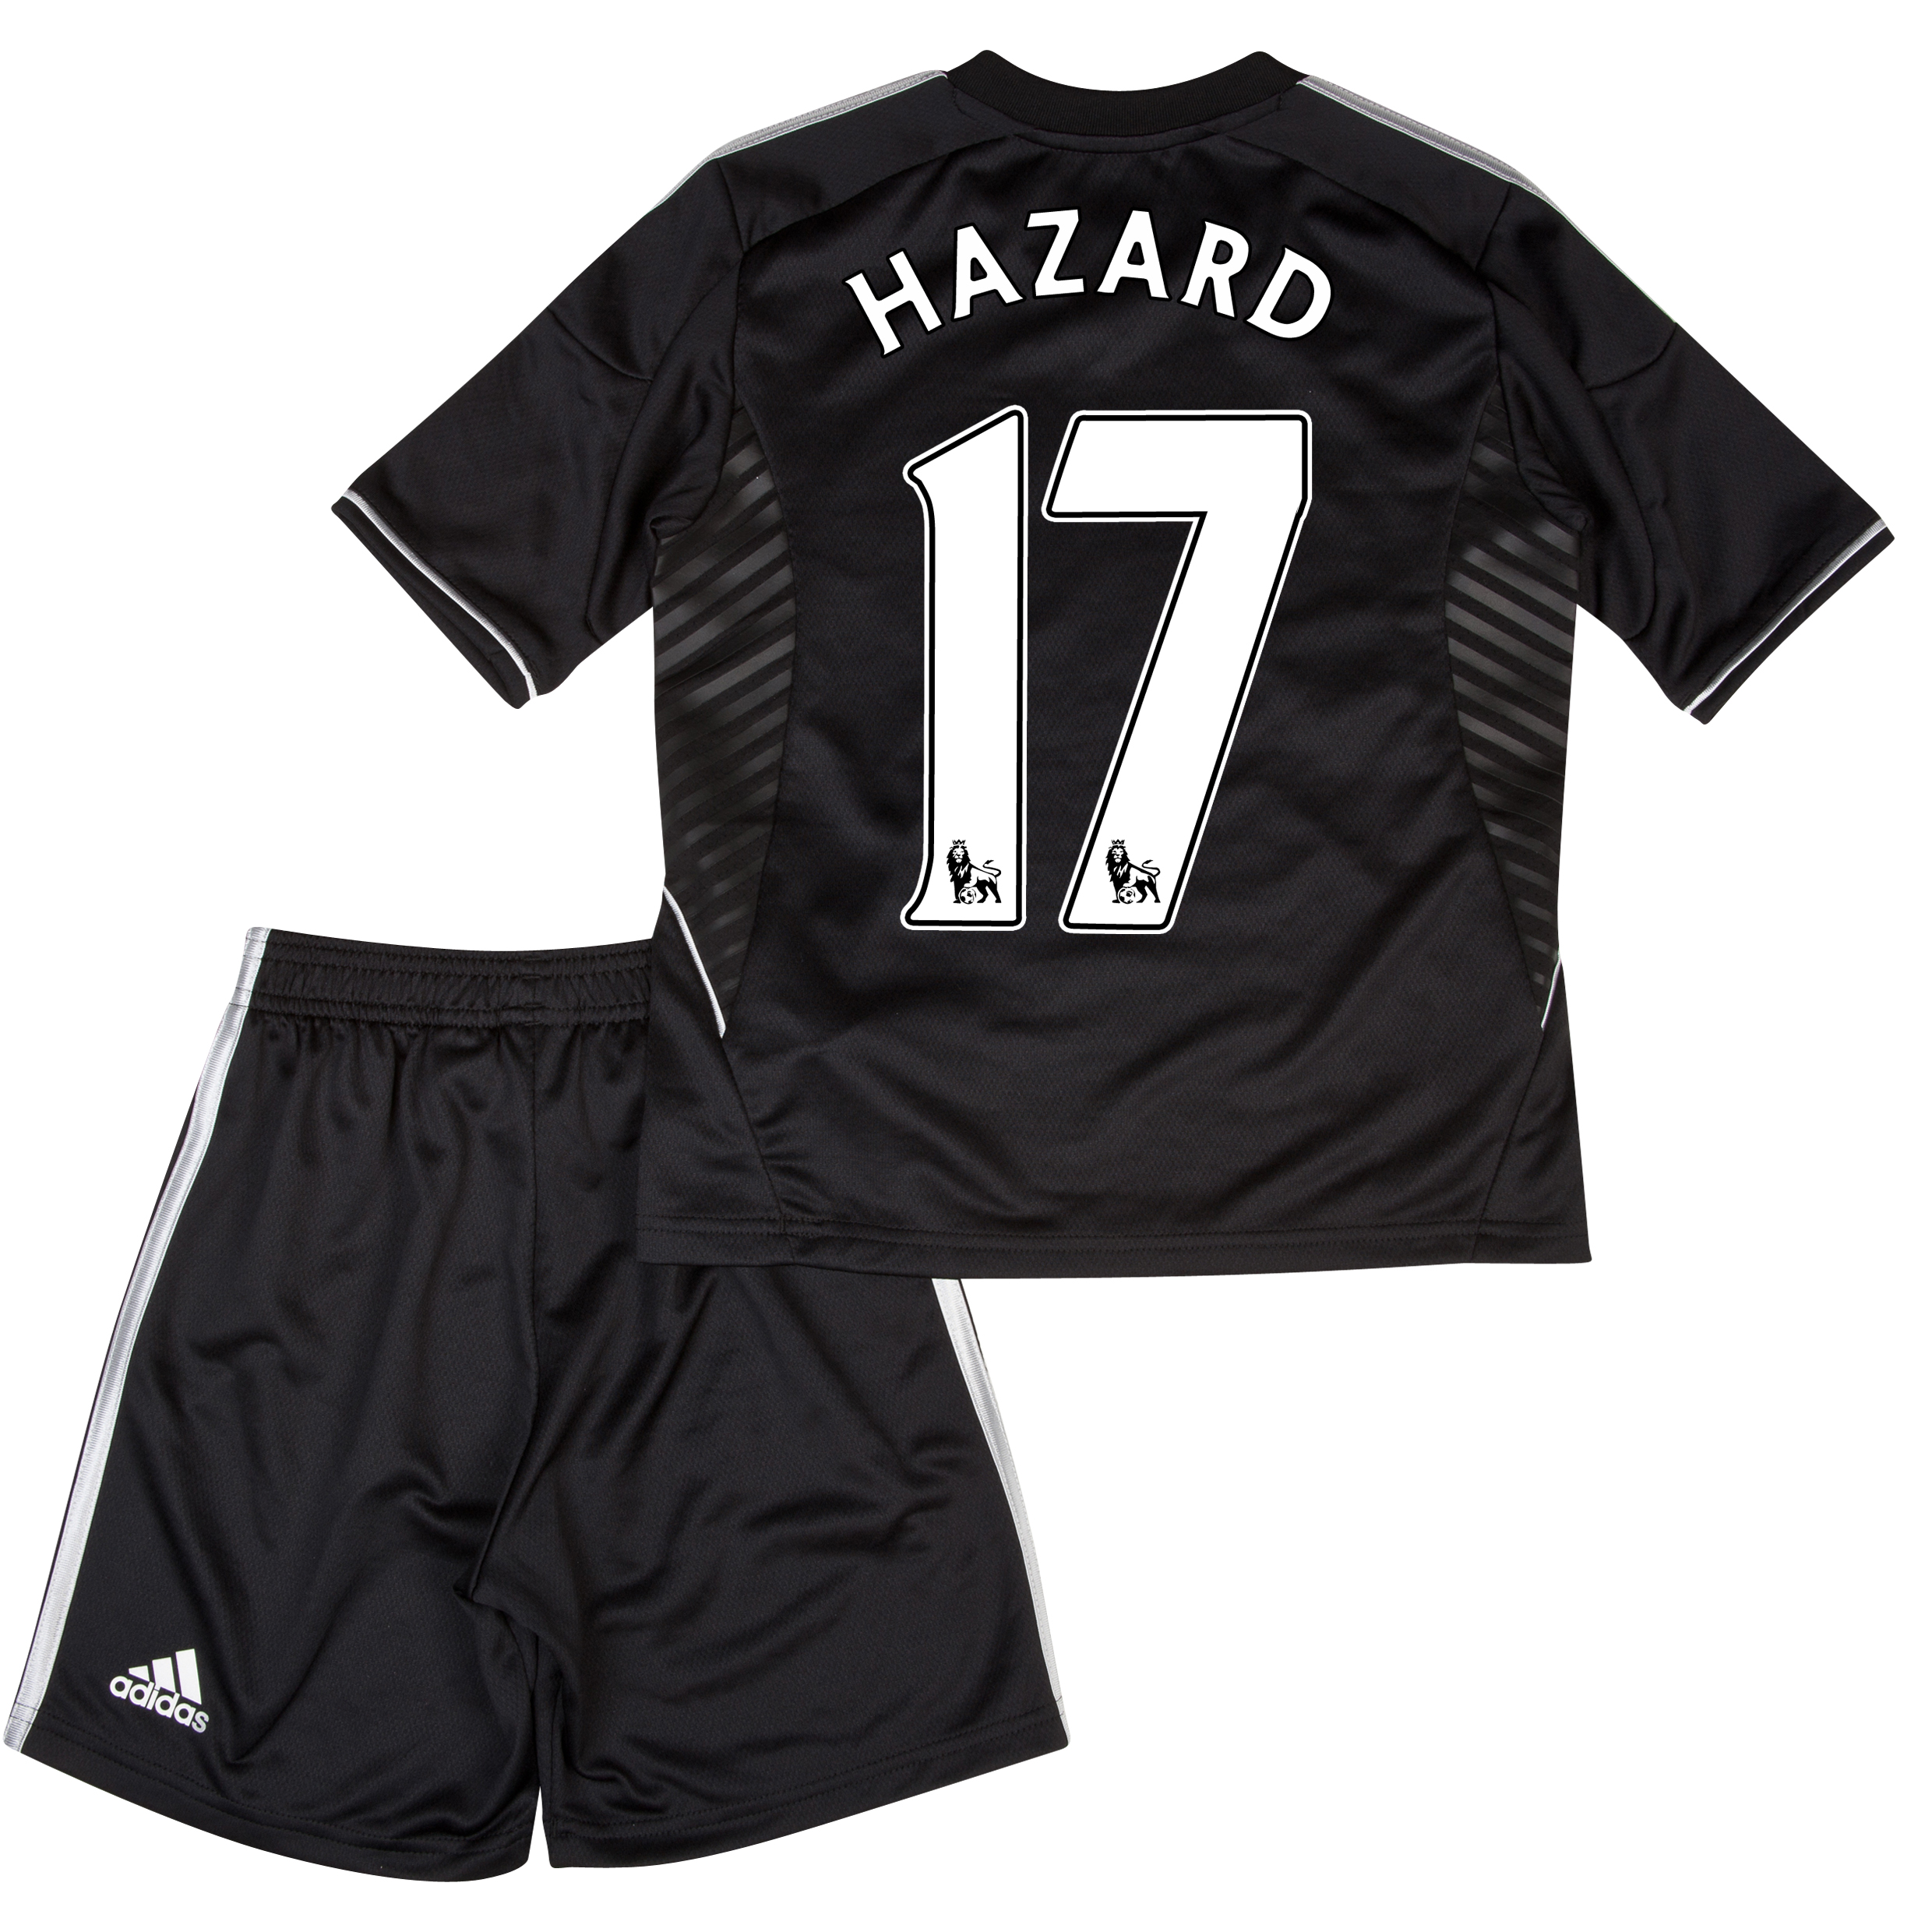 Chelsea Third Mini Kit 2013/14 with Hazard 17 printing